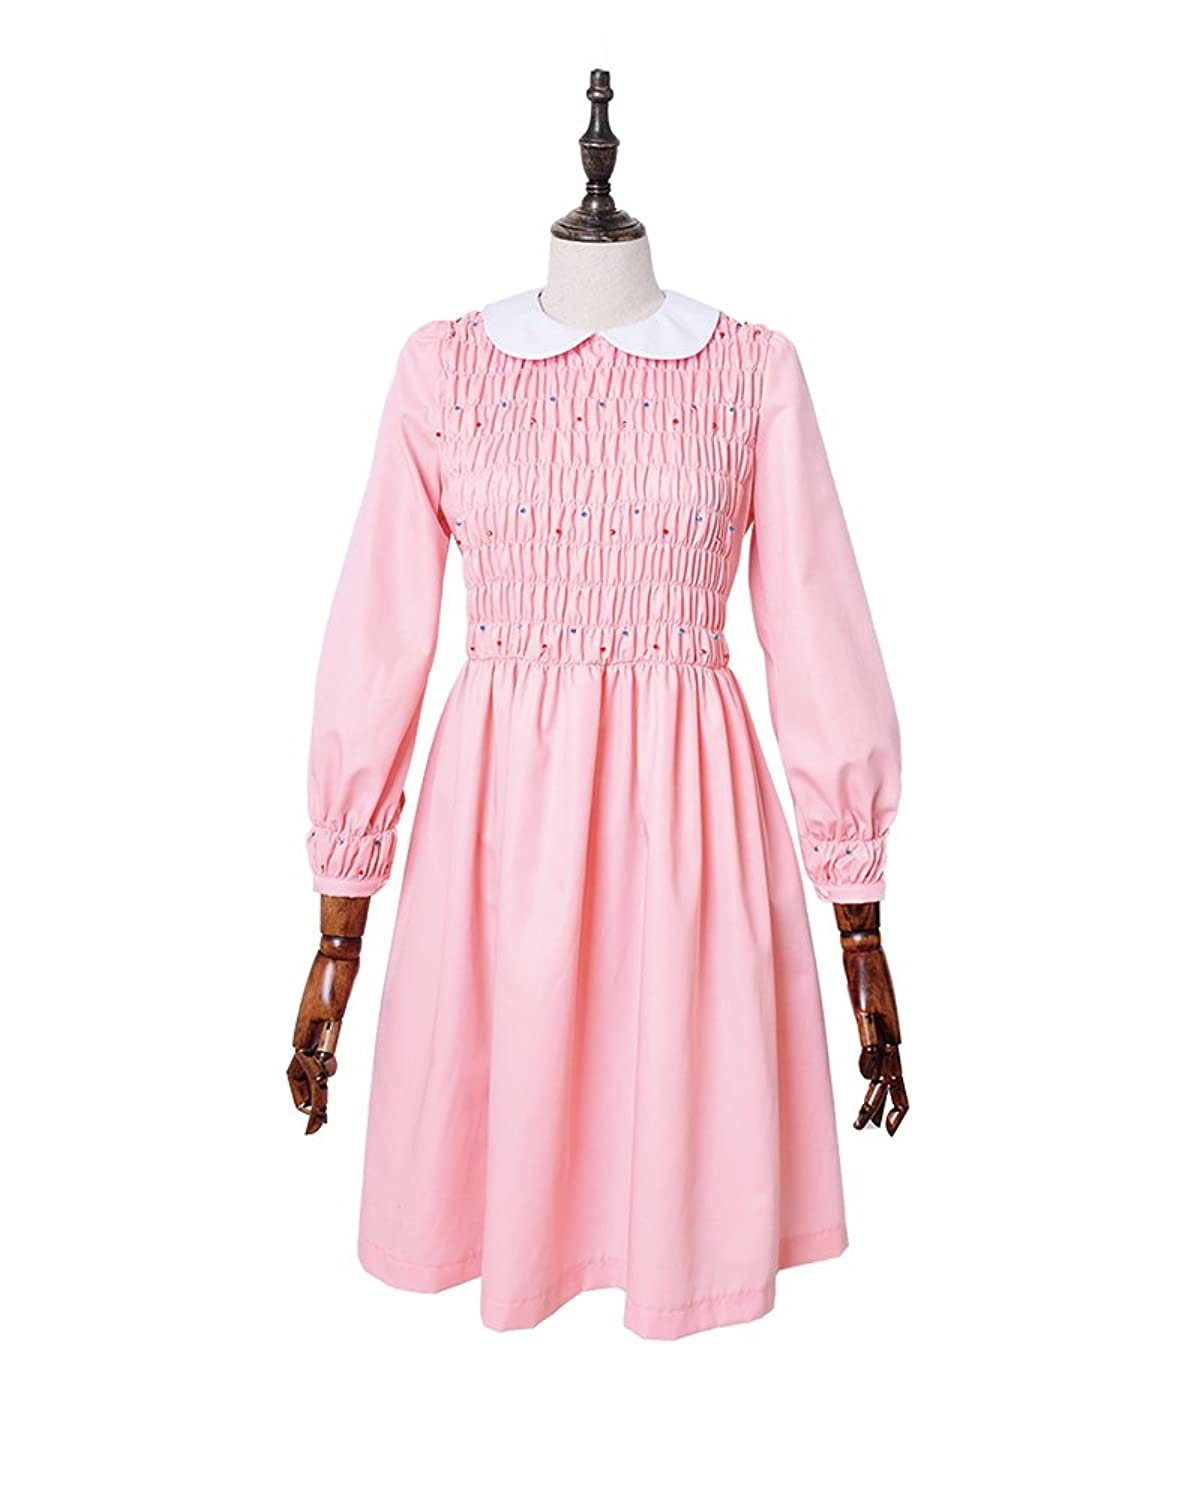 Girl's Pink Eleven Cosplay Dress Costume